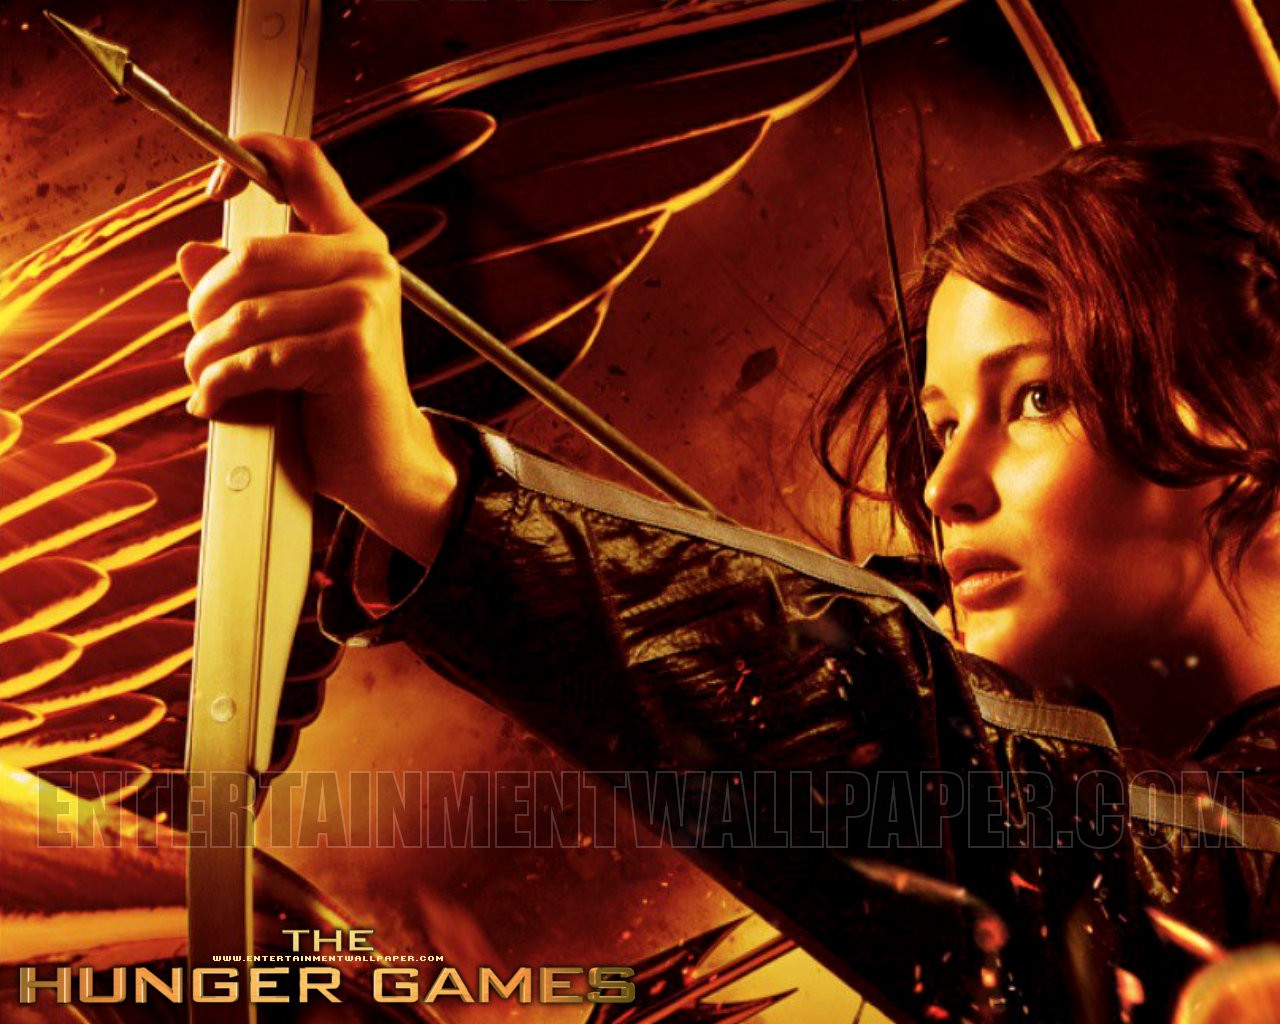 wallpaper 10031080 size 1280x1024 more the hunger games wallpaper 1280x1024